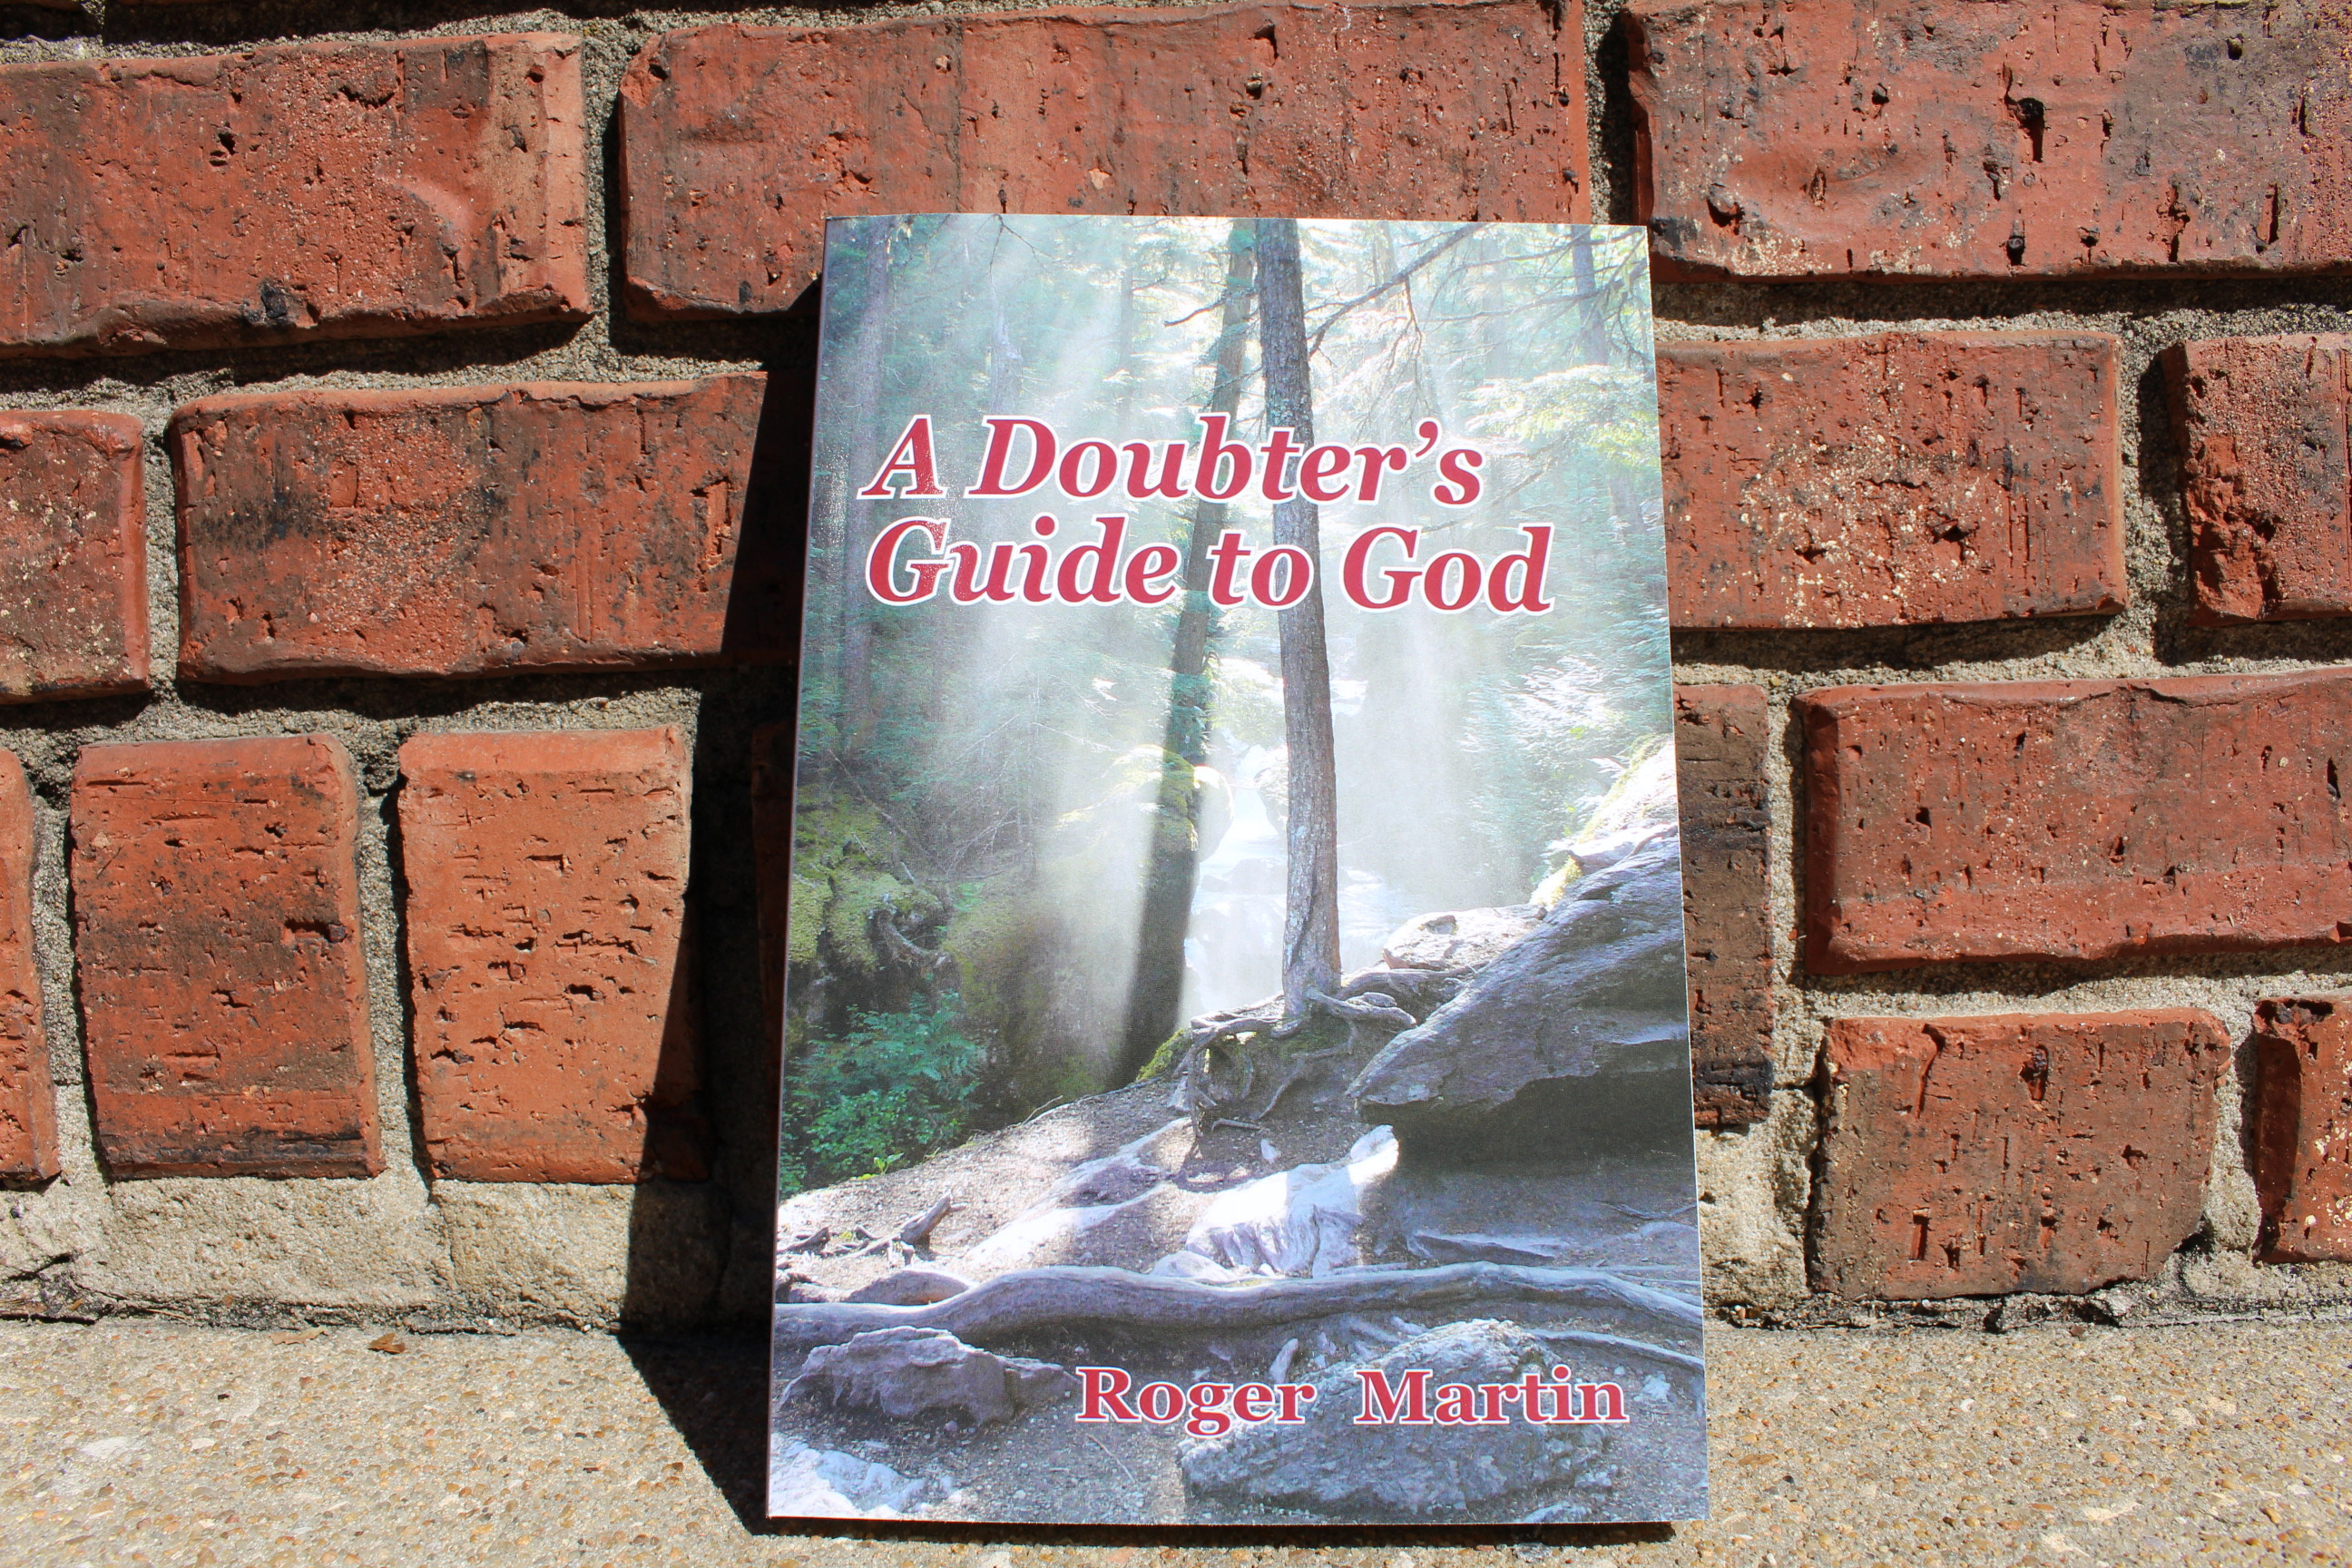 Roger Martin's book, A Doubter's Guide to God, is published by Woodley Press at Washburn University in Topeka. (Photo by J. Schafer)